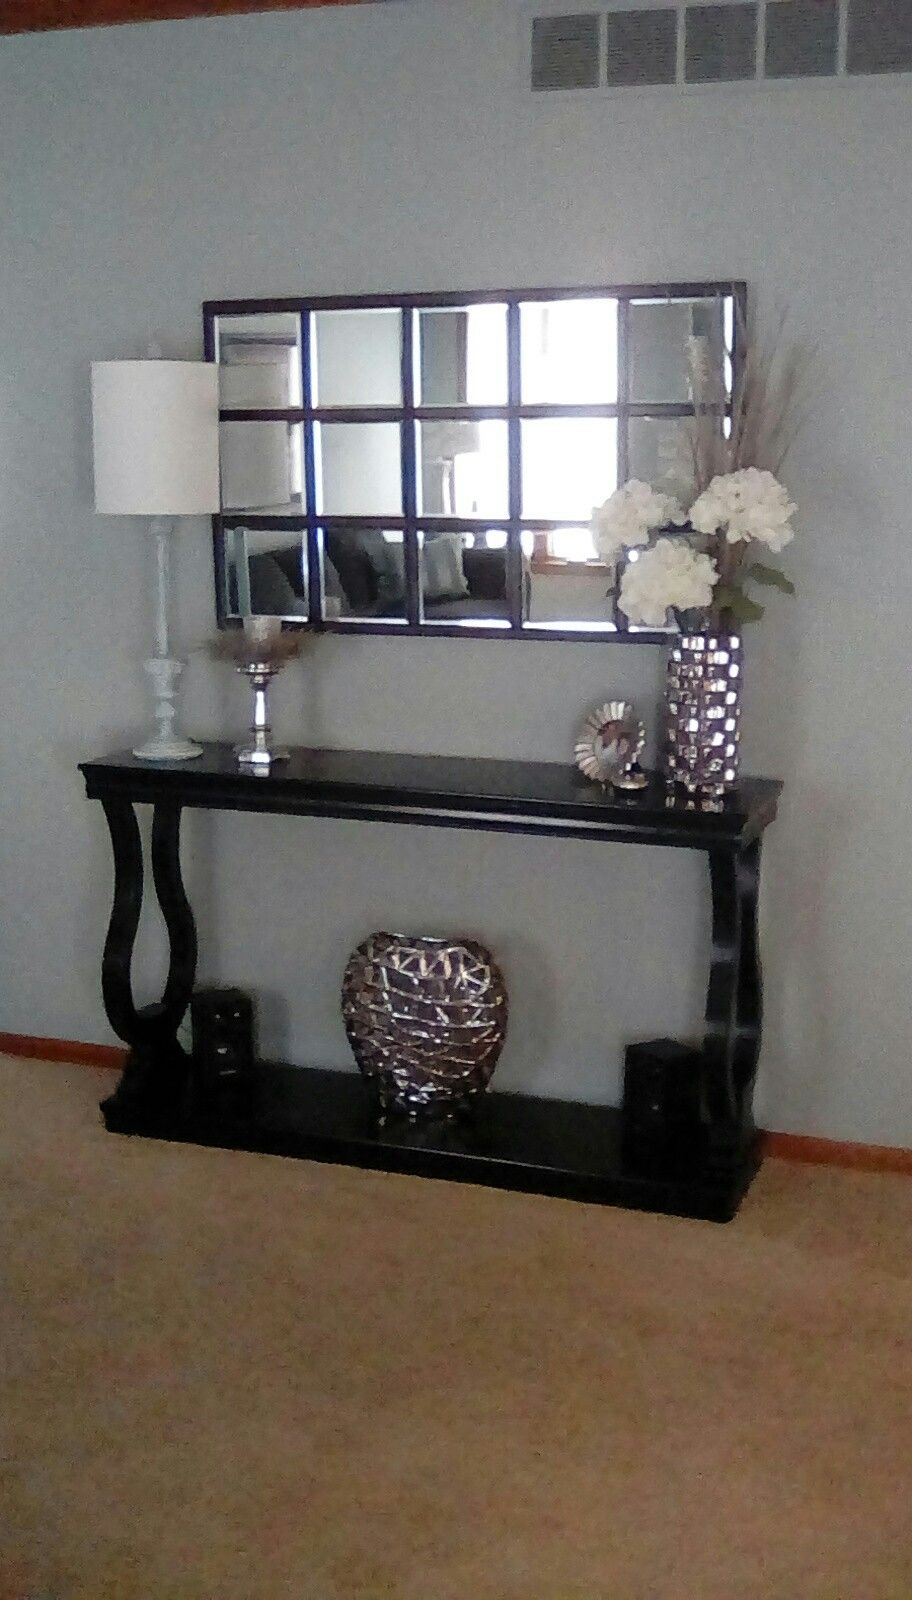 Home goods find on console table husbands knockoff on